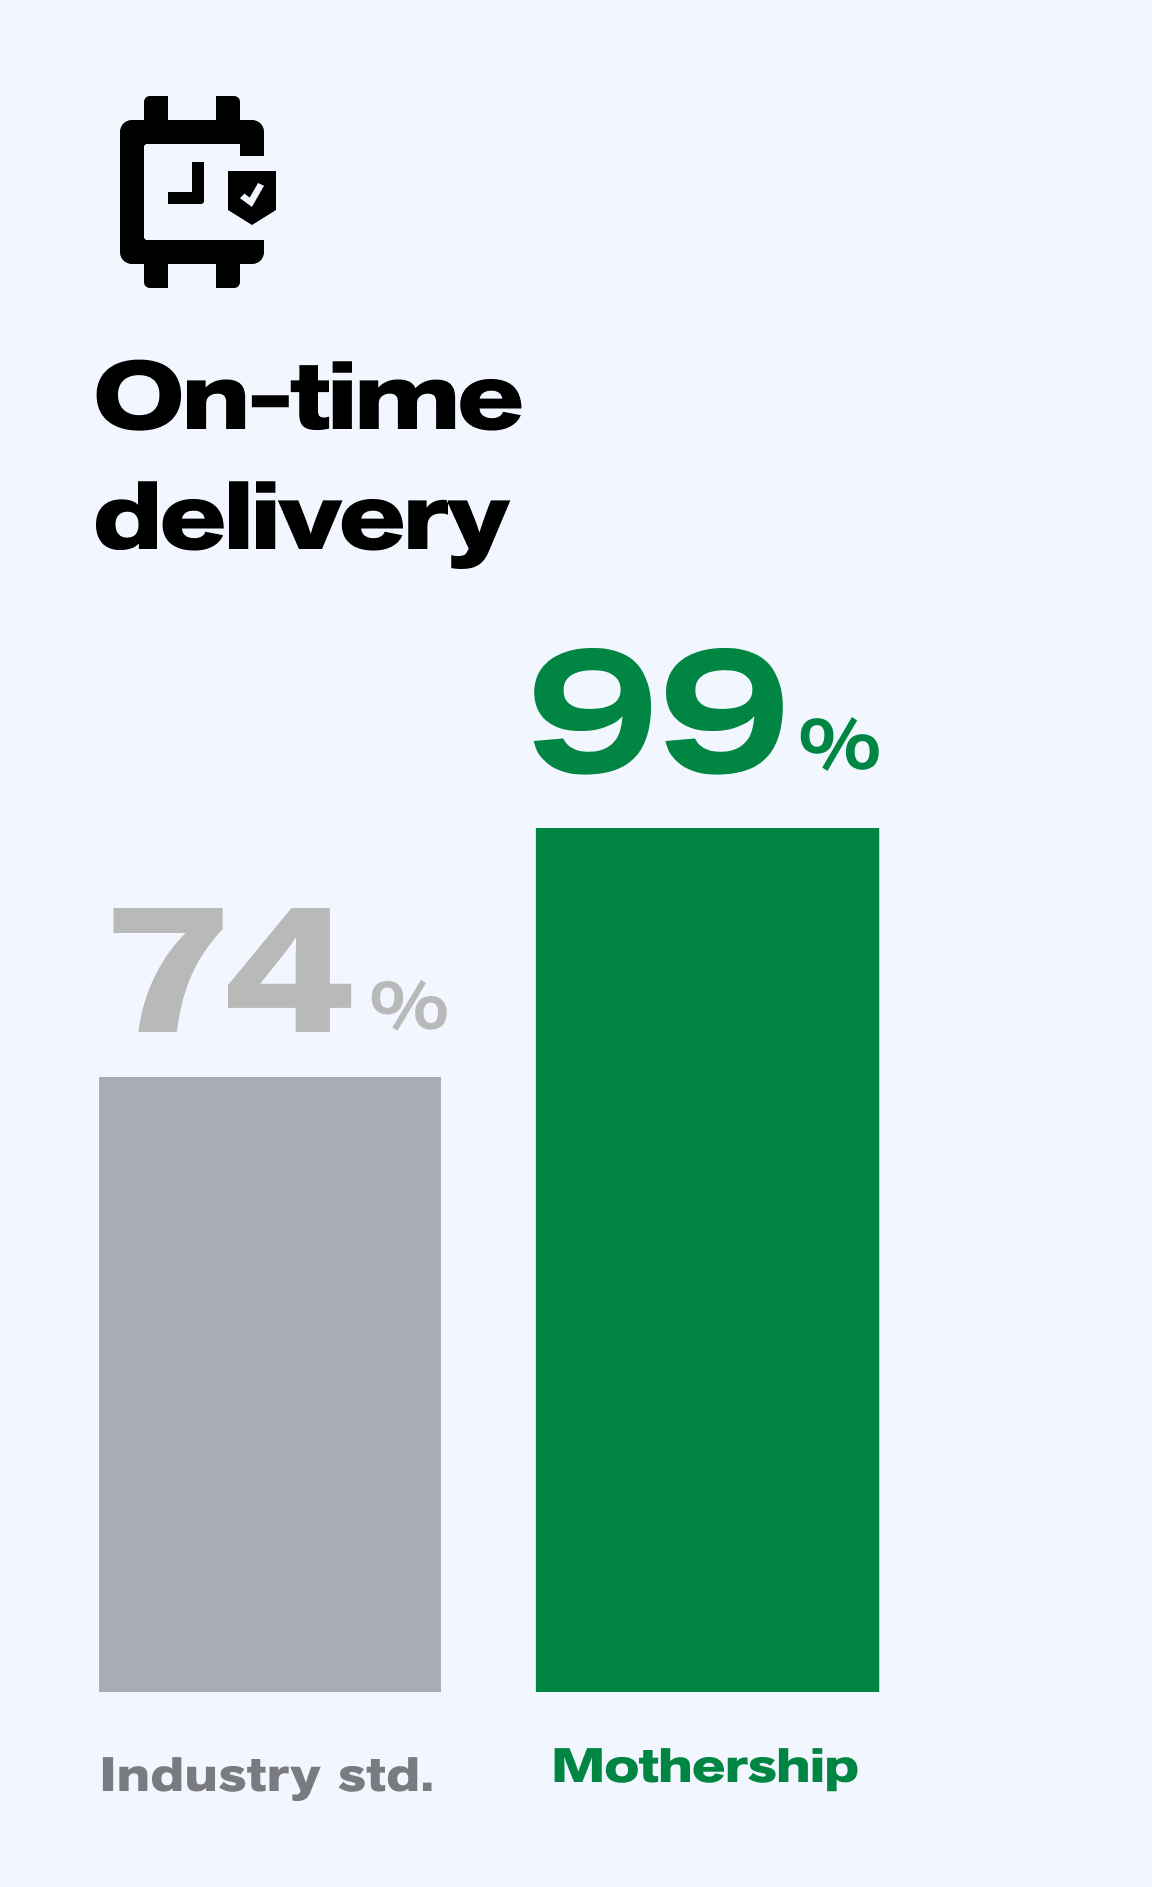 Mothership has a 99% on-time delivery percentage, compared to 20% for traditional carriers.